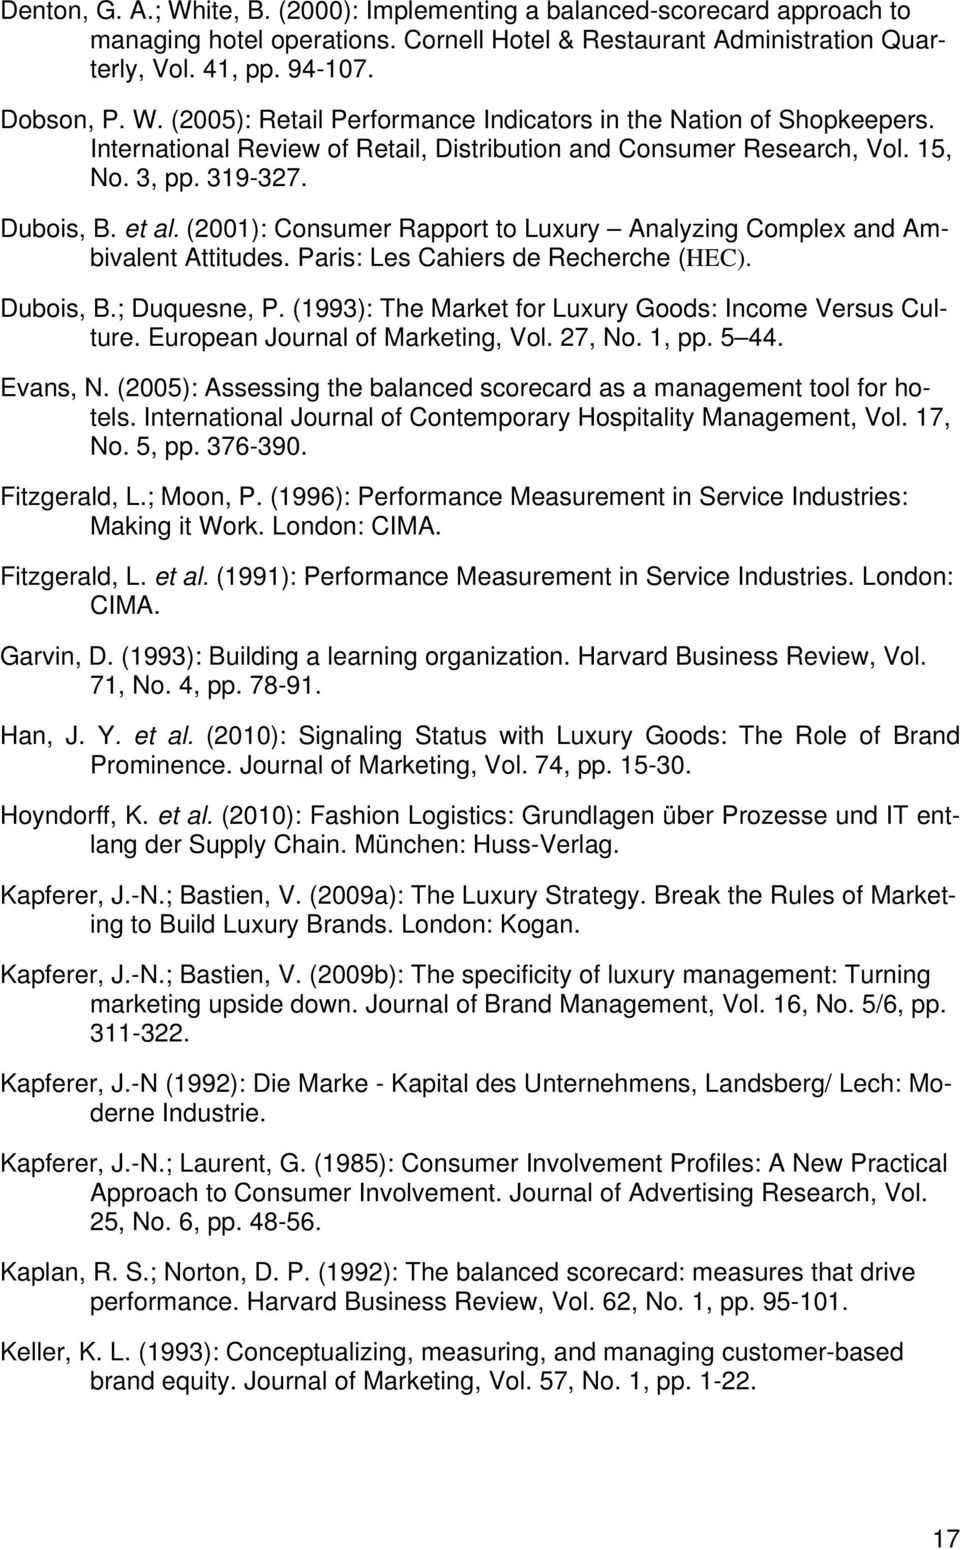 Paris: Les Cahiers de Recherche (HEC). Dubois, B.; Duquesne, P. (1993): The Market for Luxury Goods: Income Versus Culture. European Journal of Marketing, Vol. 27, No. 1, pp. 5 44. Evans, N.